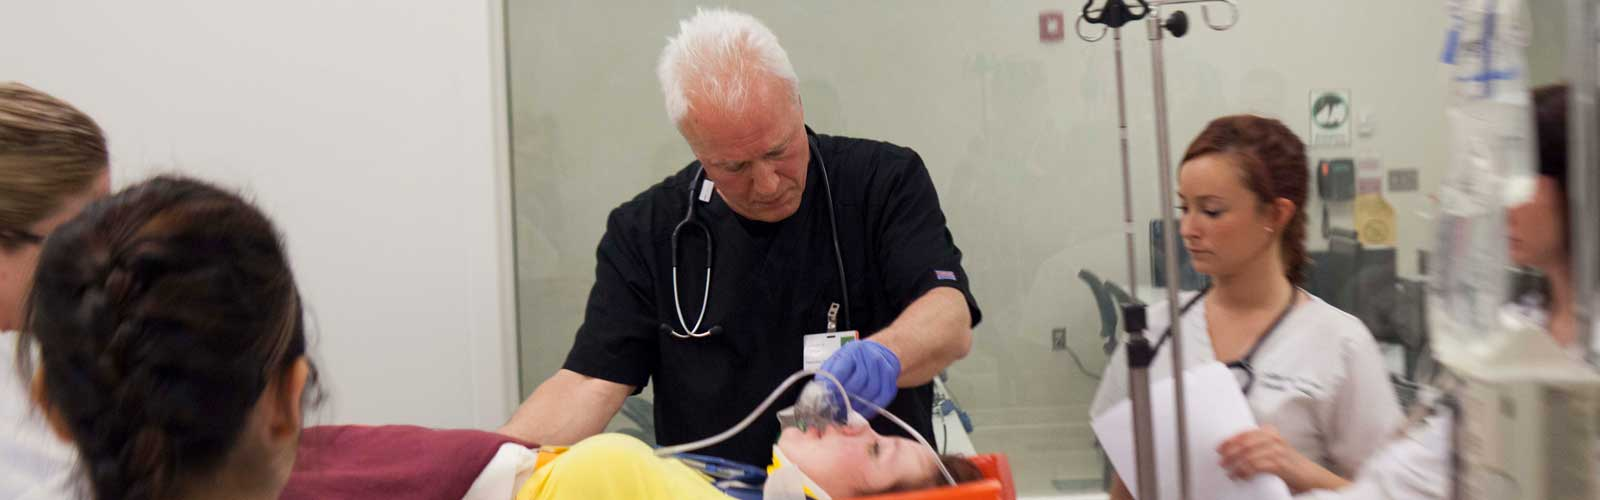 Students learn how to take care of a patient during simulation